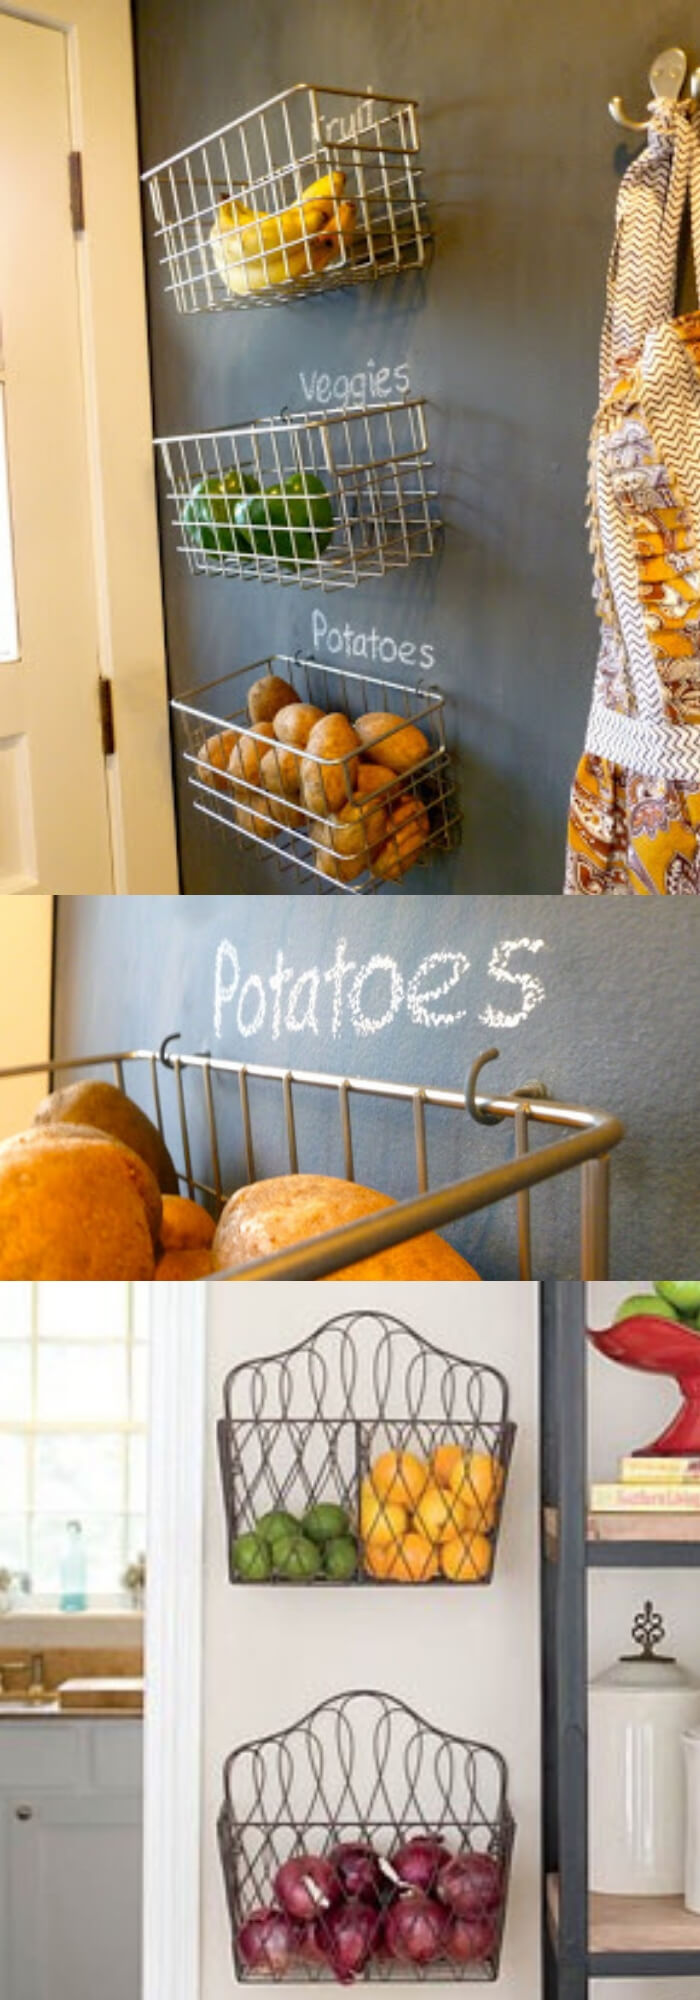 Fruit and Veggie Hanging Wall Baskets | Best Fruit and Vegetable Storage Ideas For Your Kitchen